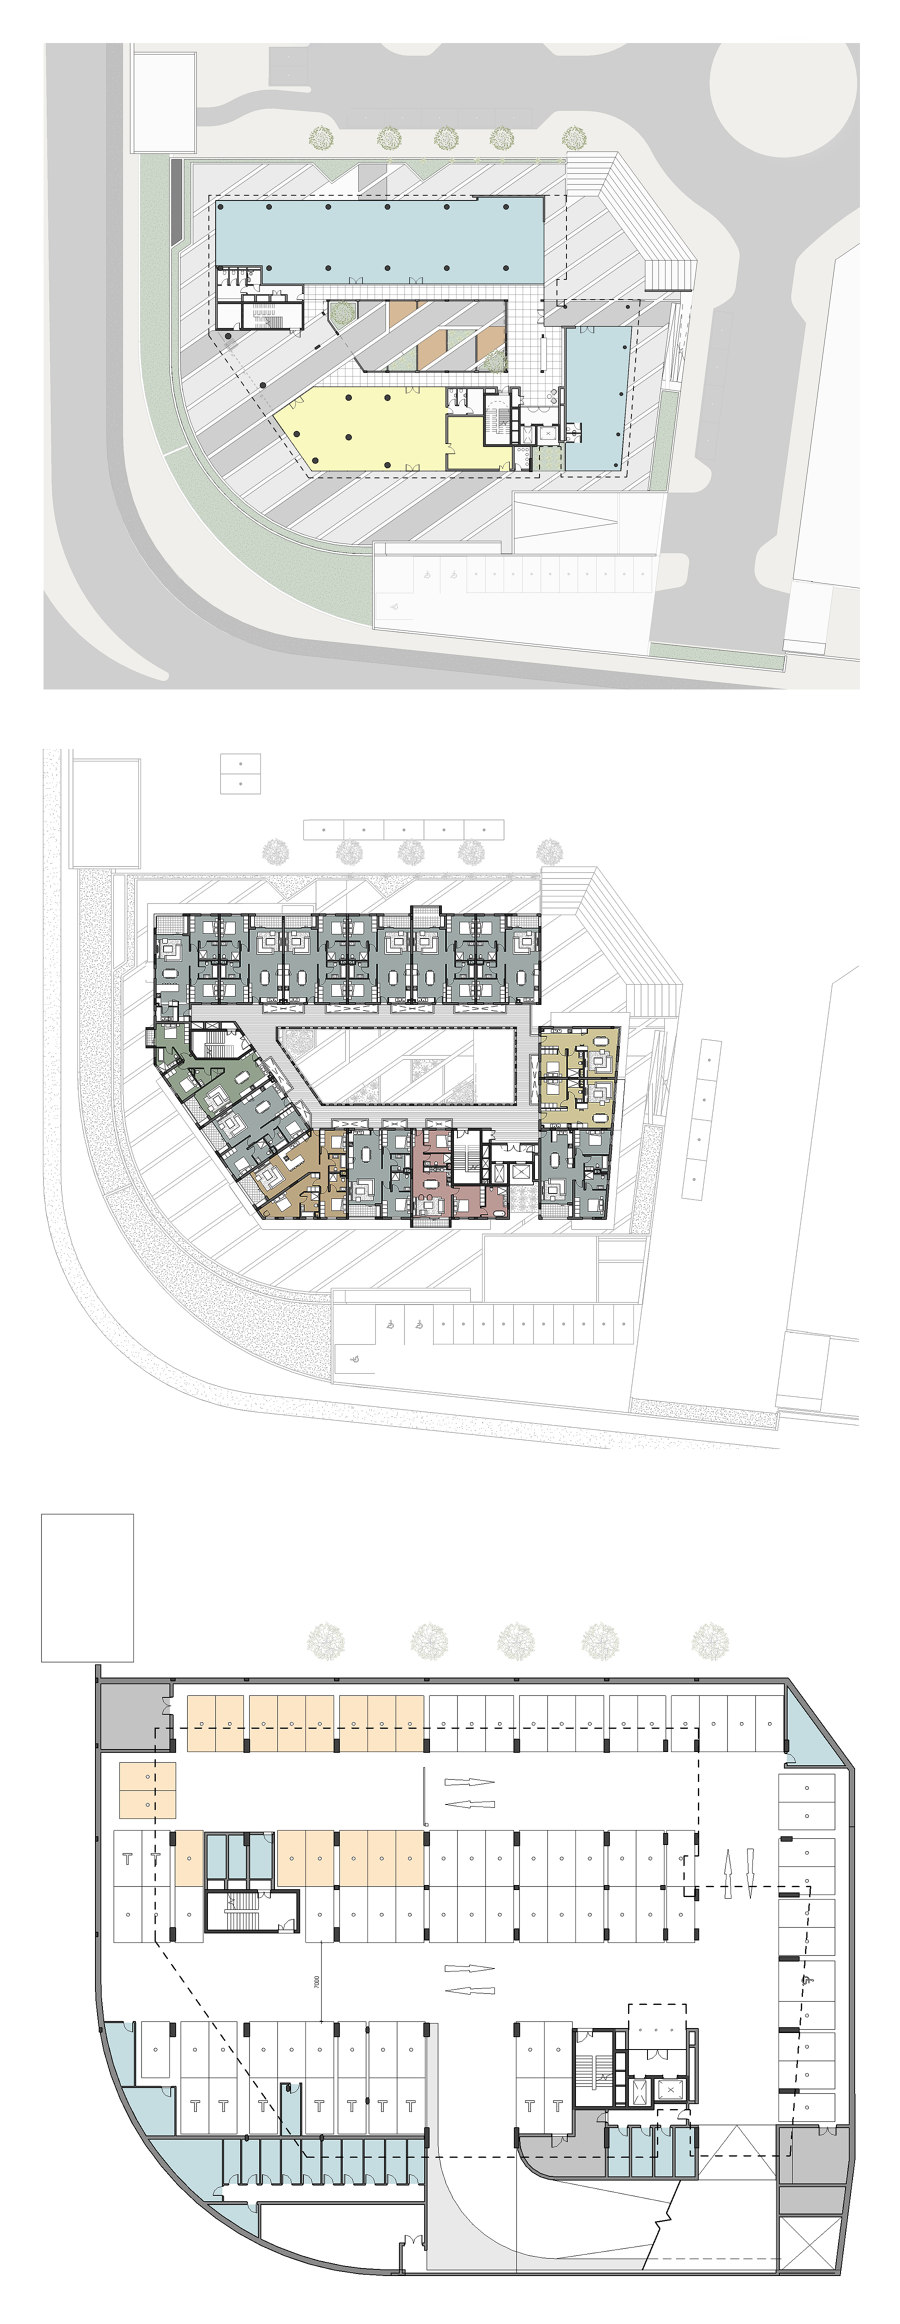 Axis by dhk | Office buildings